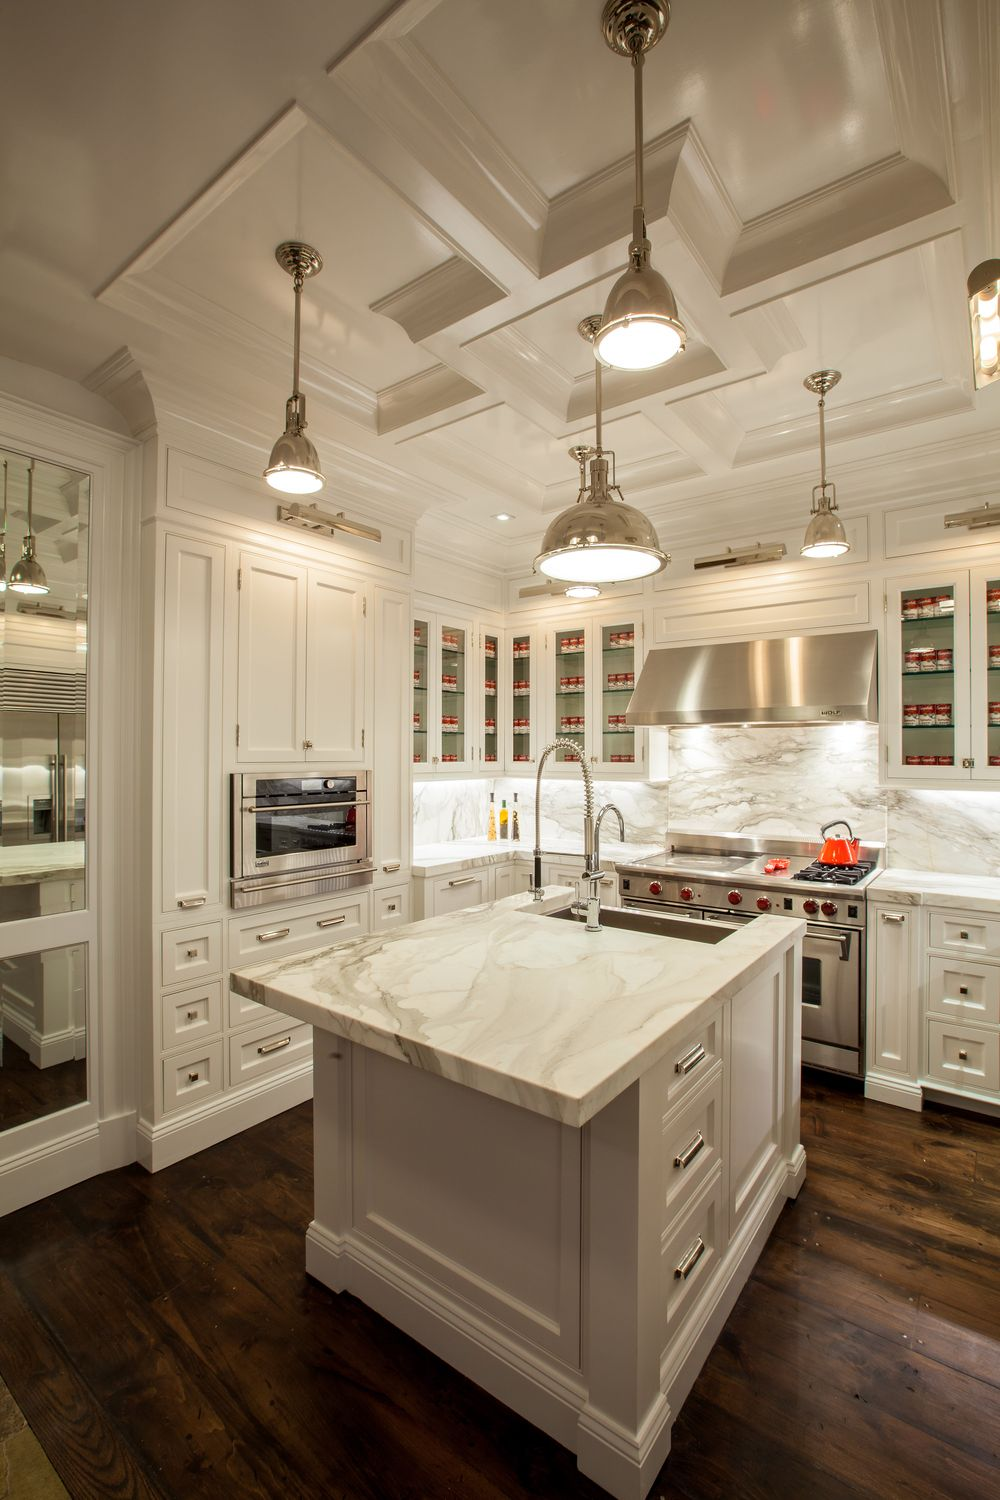 benefits of counters the to carrara countertop kitchen marble countertops risks alternative